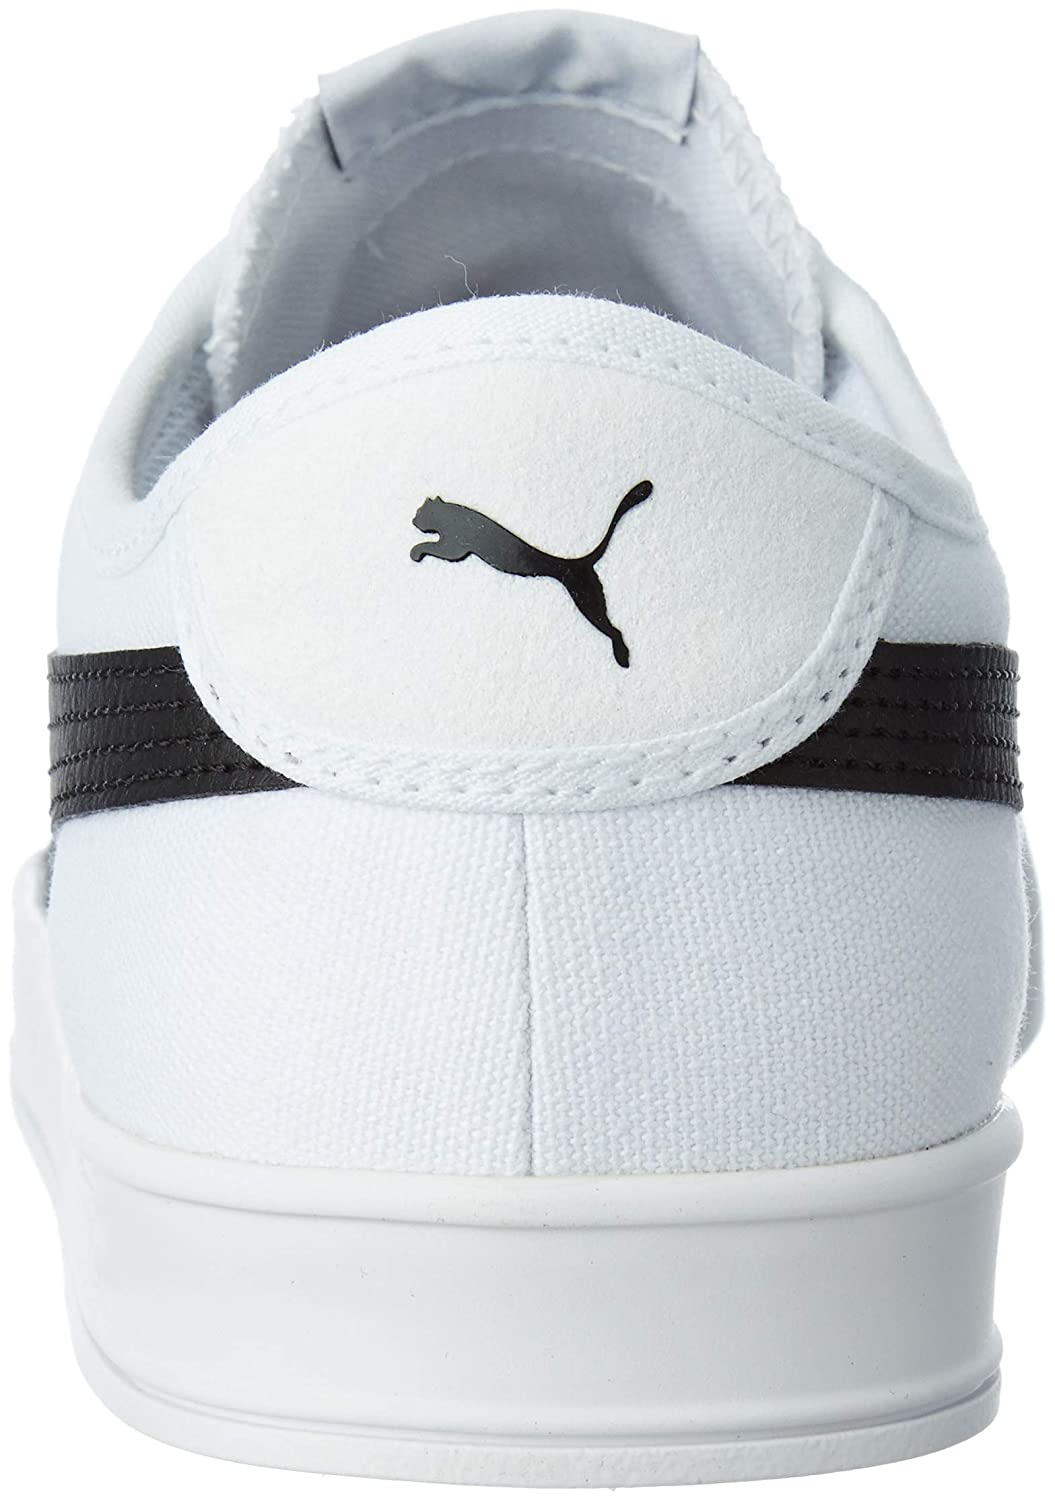 Puma Boy s Smash v2 Vulc CV Sneakers  Buy Online at Low Prices in India -  Amazon.in b071cd0225